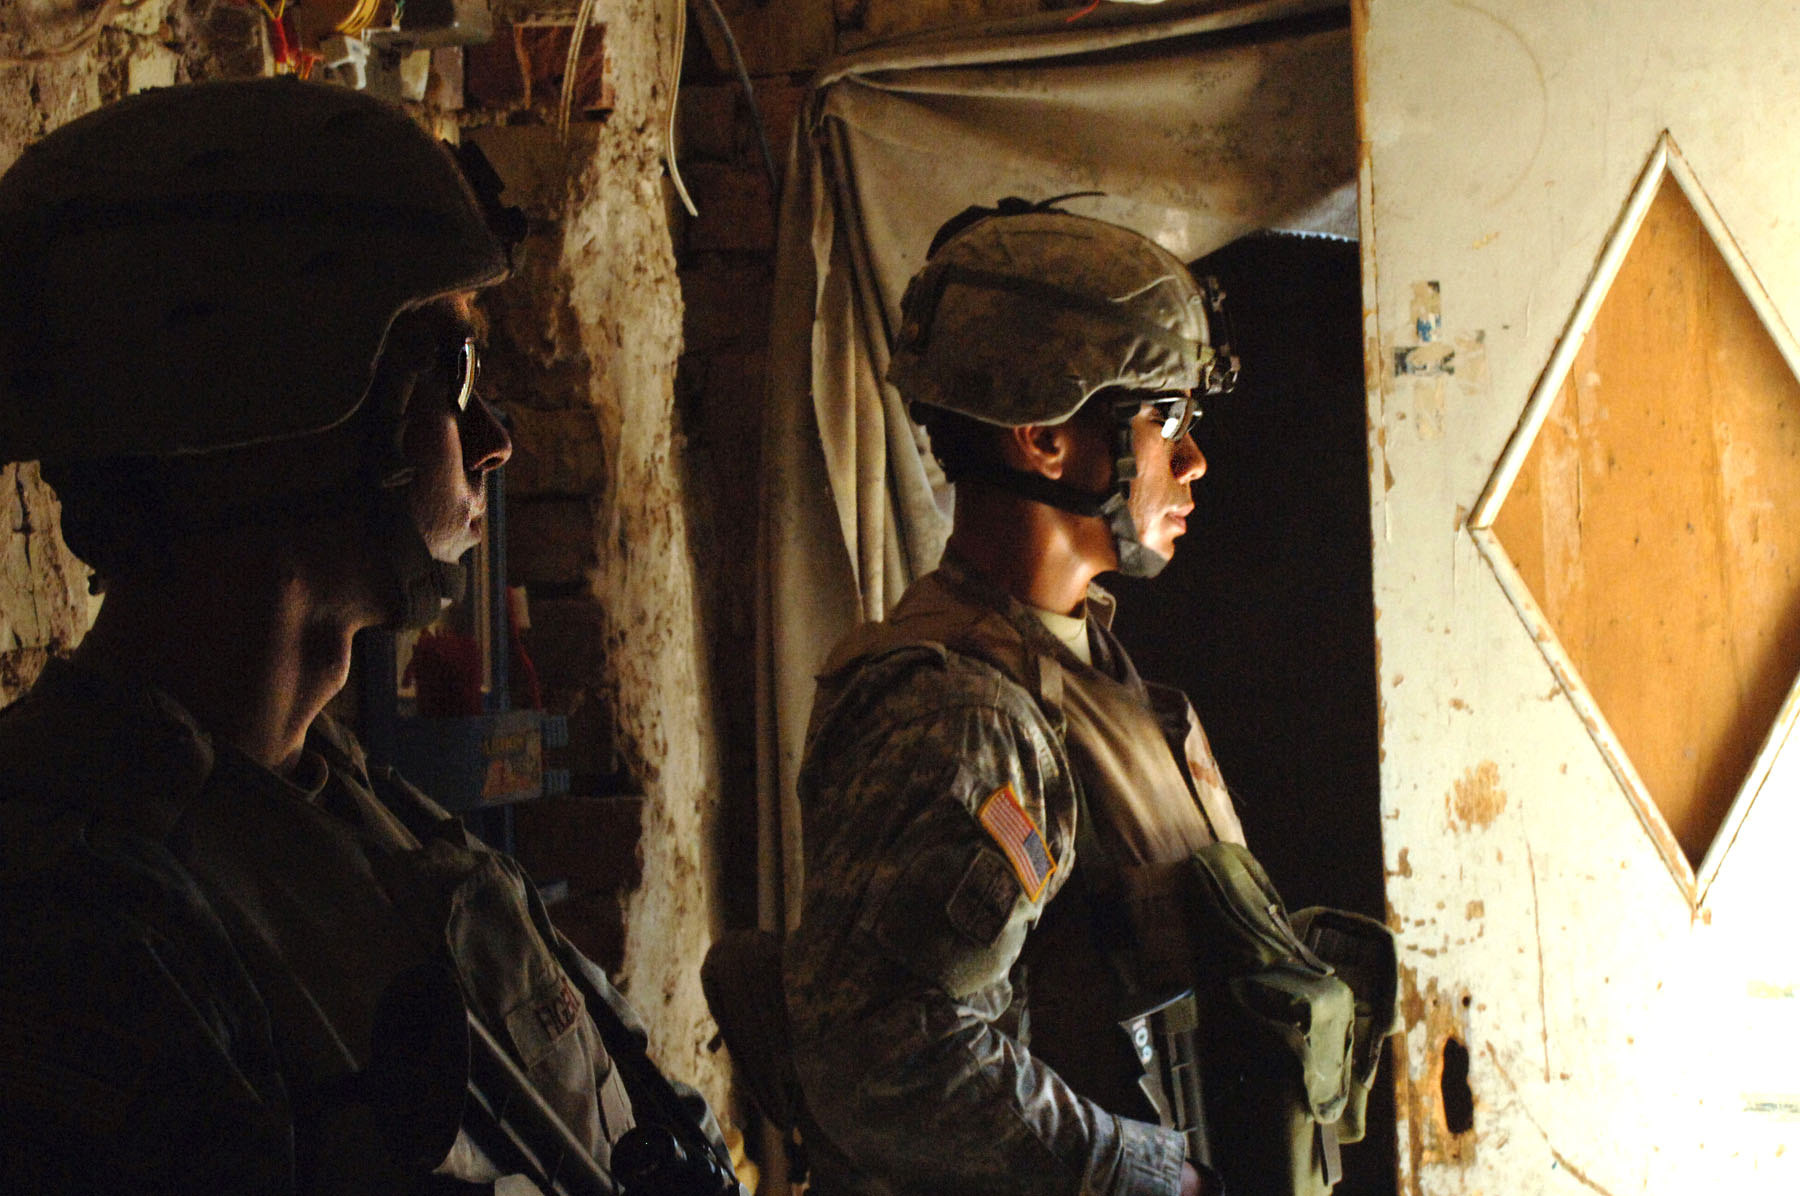 Army Soldiers in the Sun, photo by: SPC HOLLEY BAKER